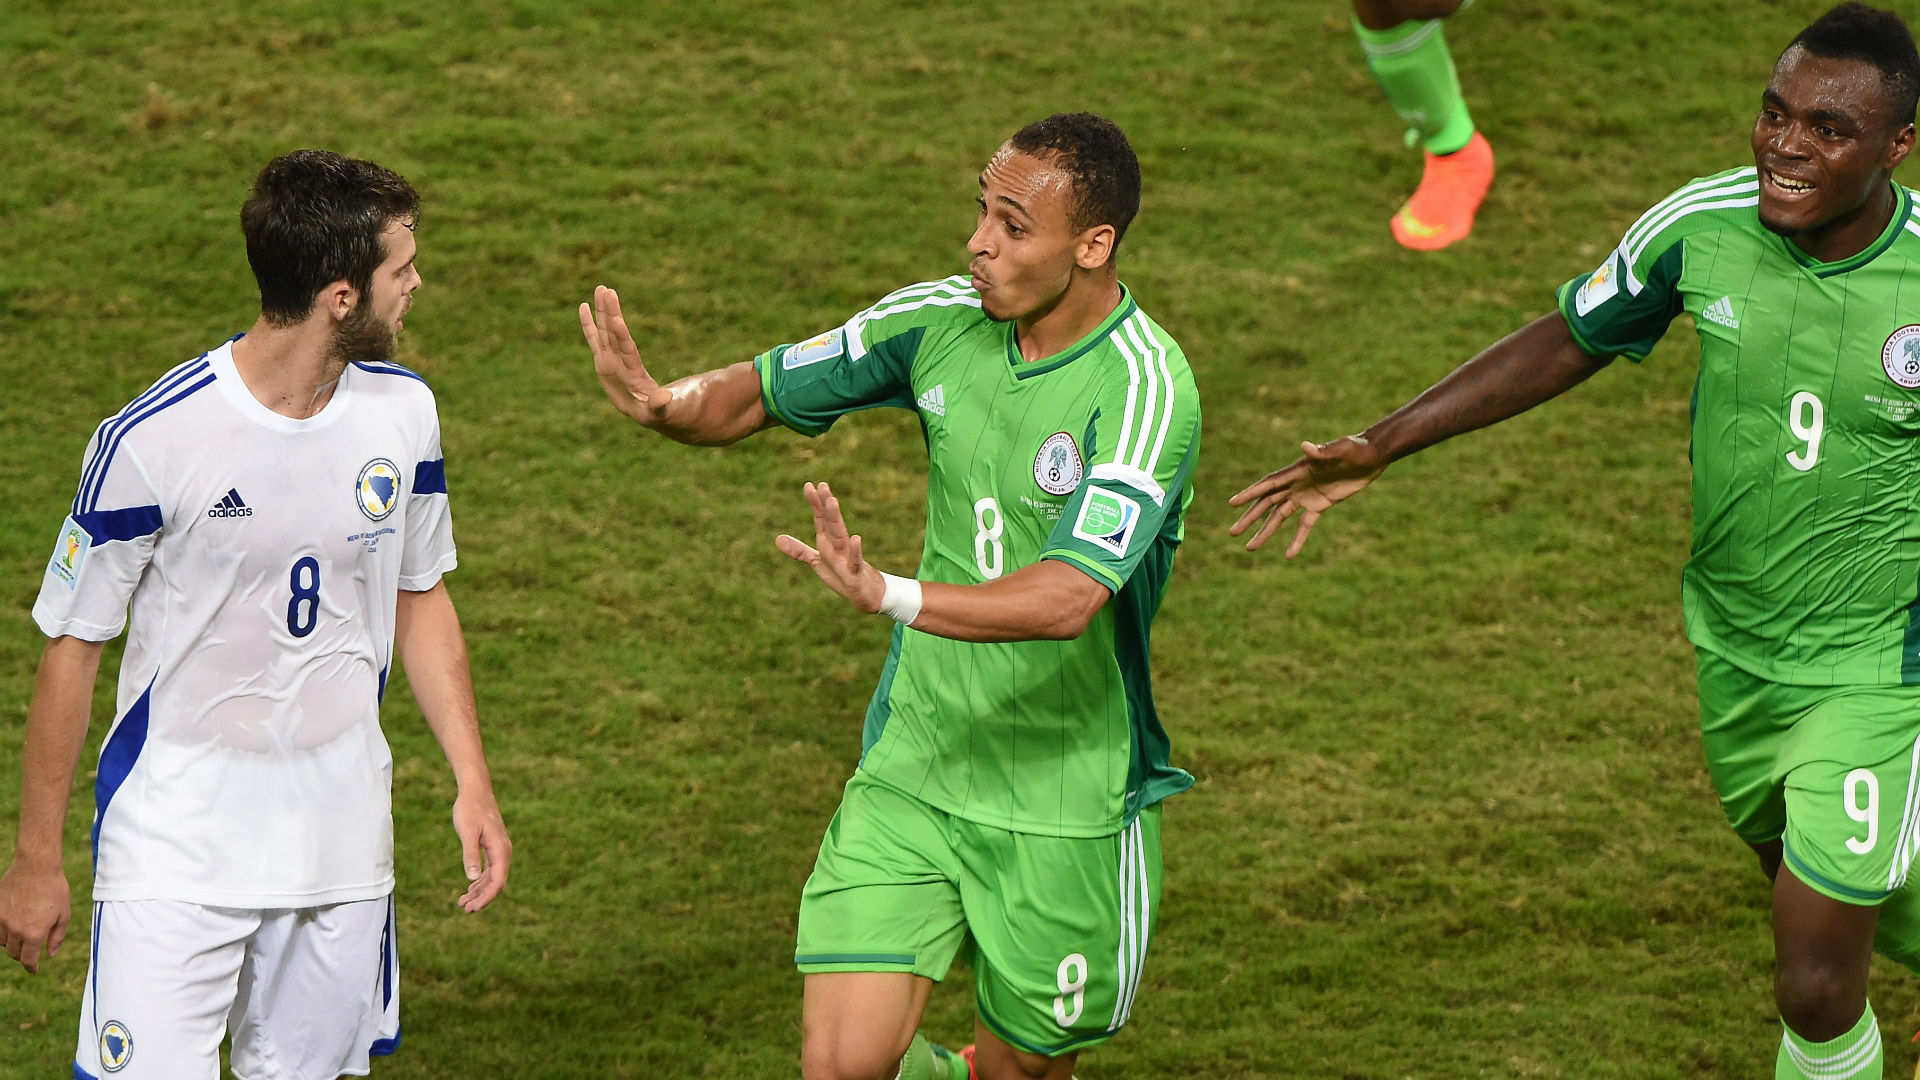 Osaze Odemwingie announces his retirement from football in an emotional way